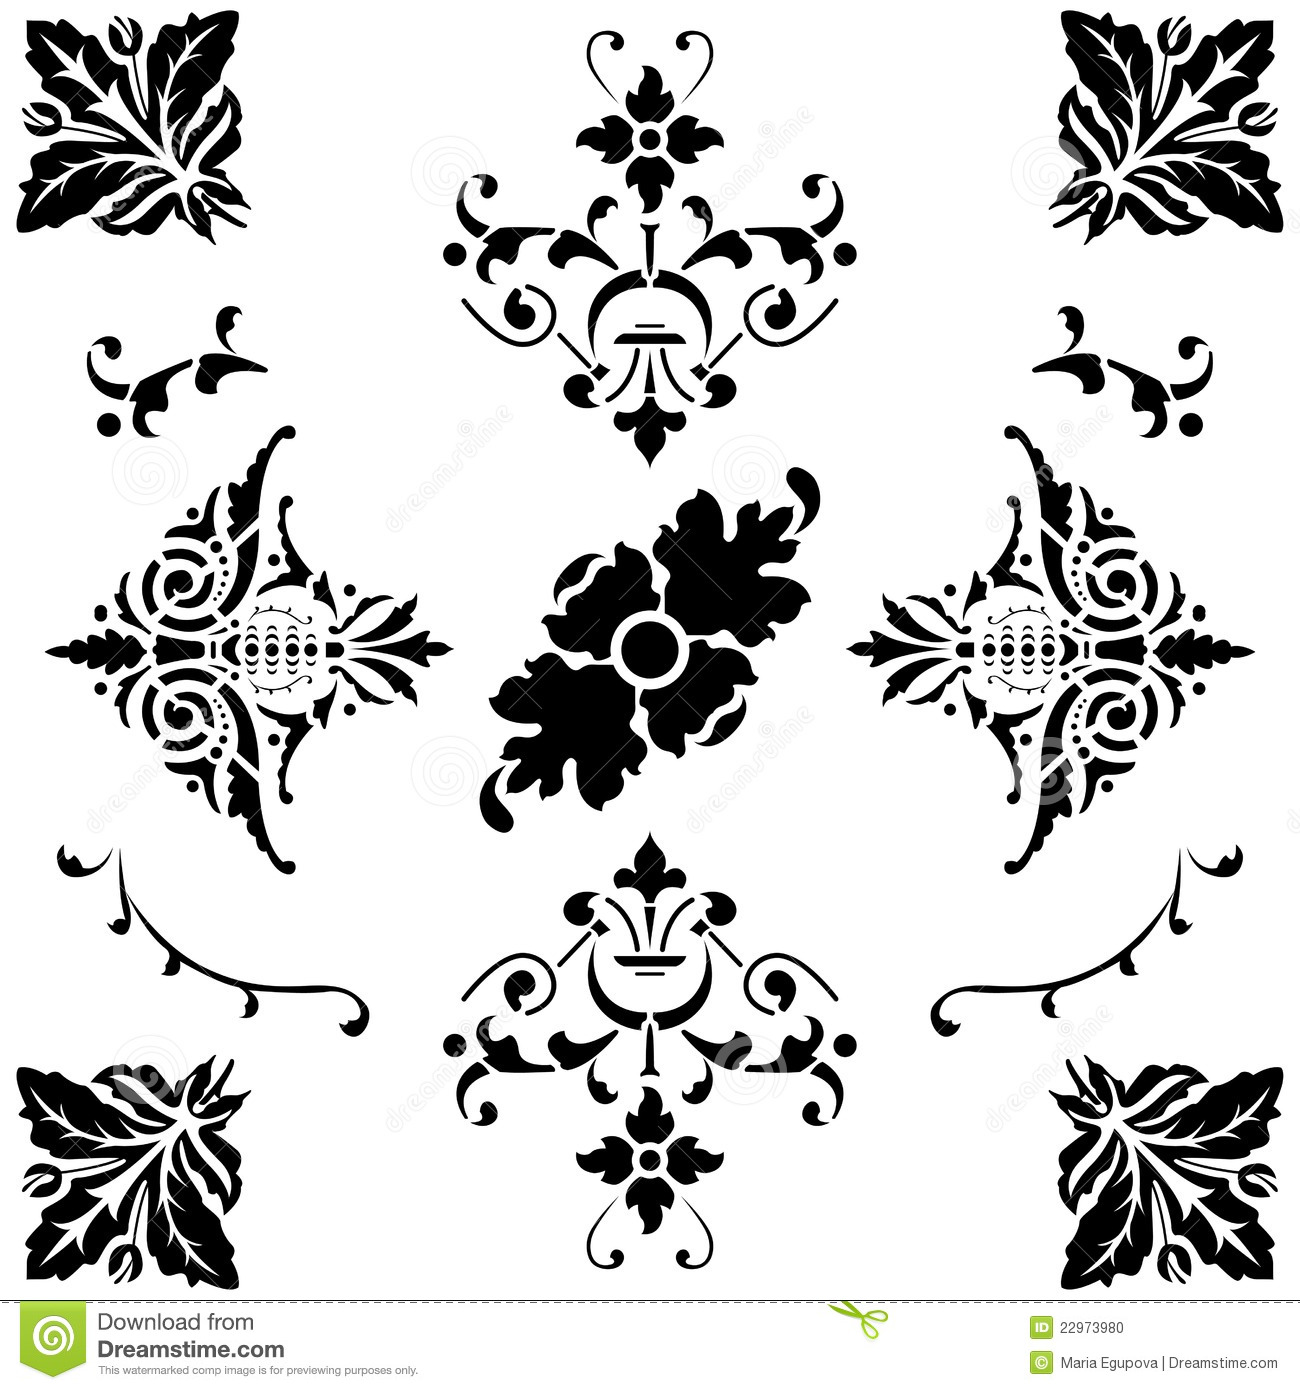 Black and white ornaments - Medieval